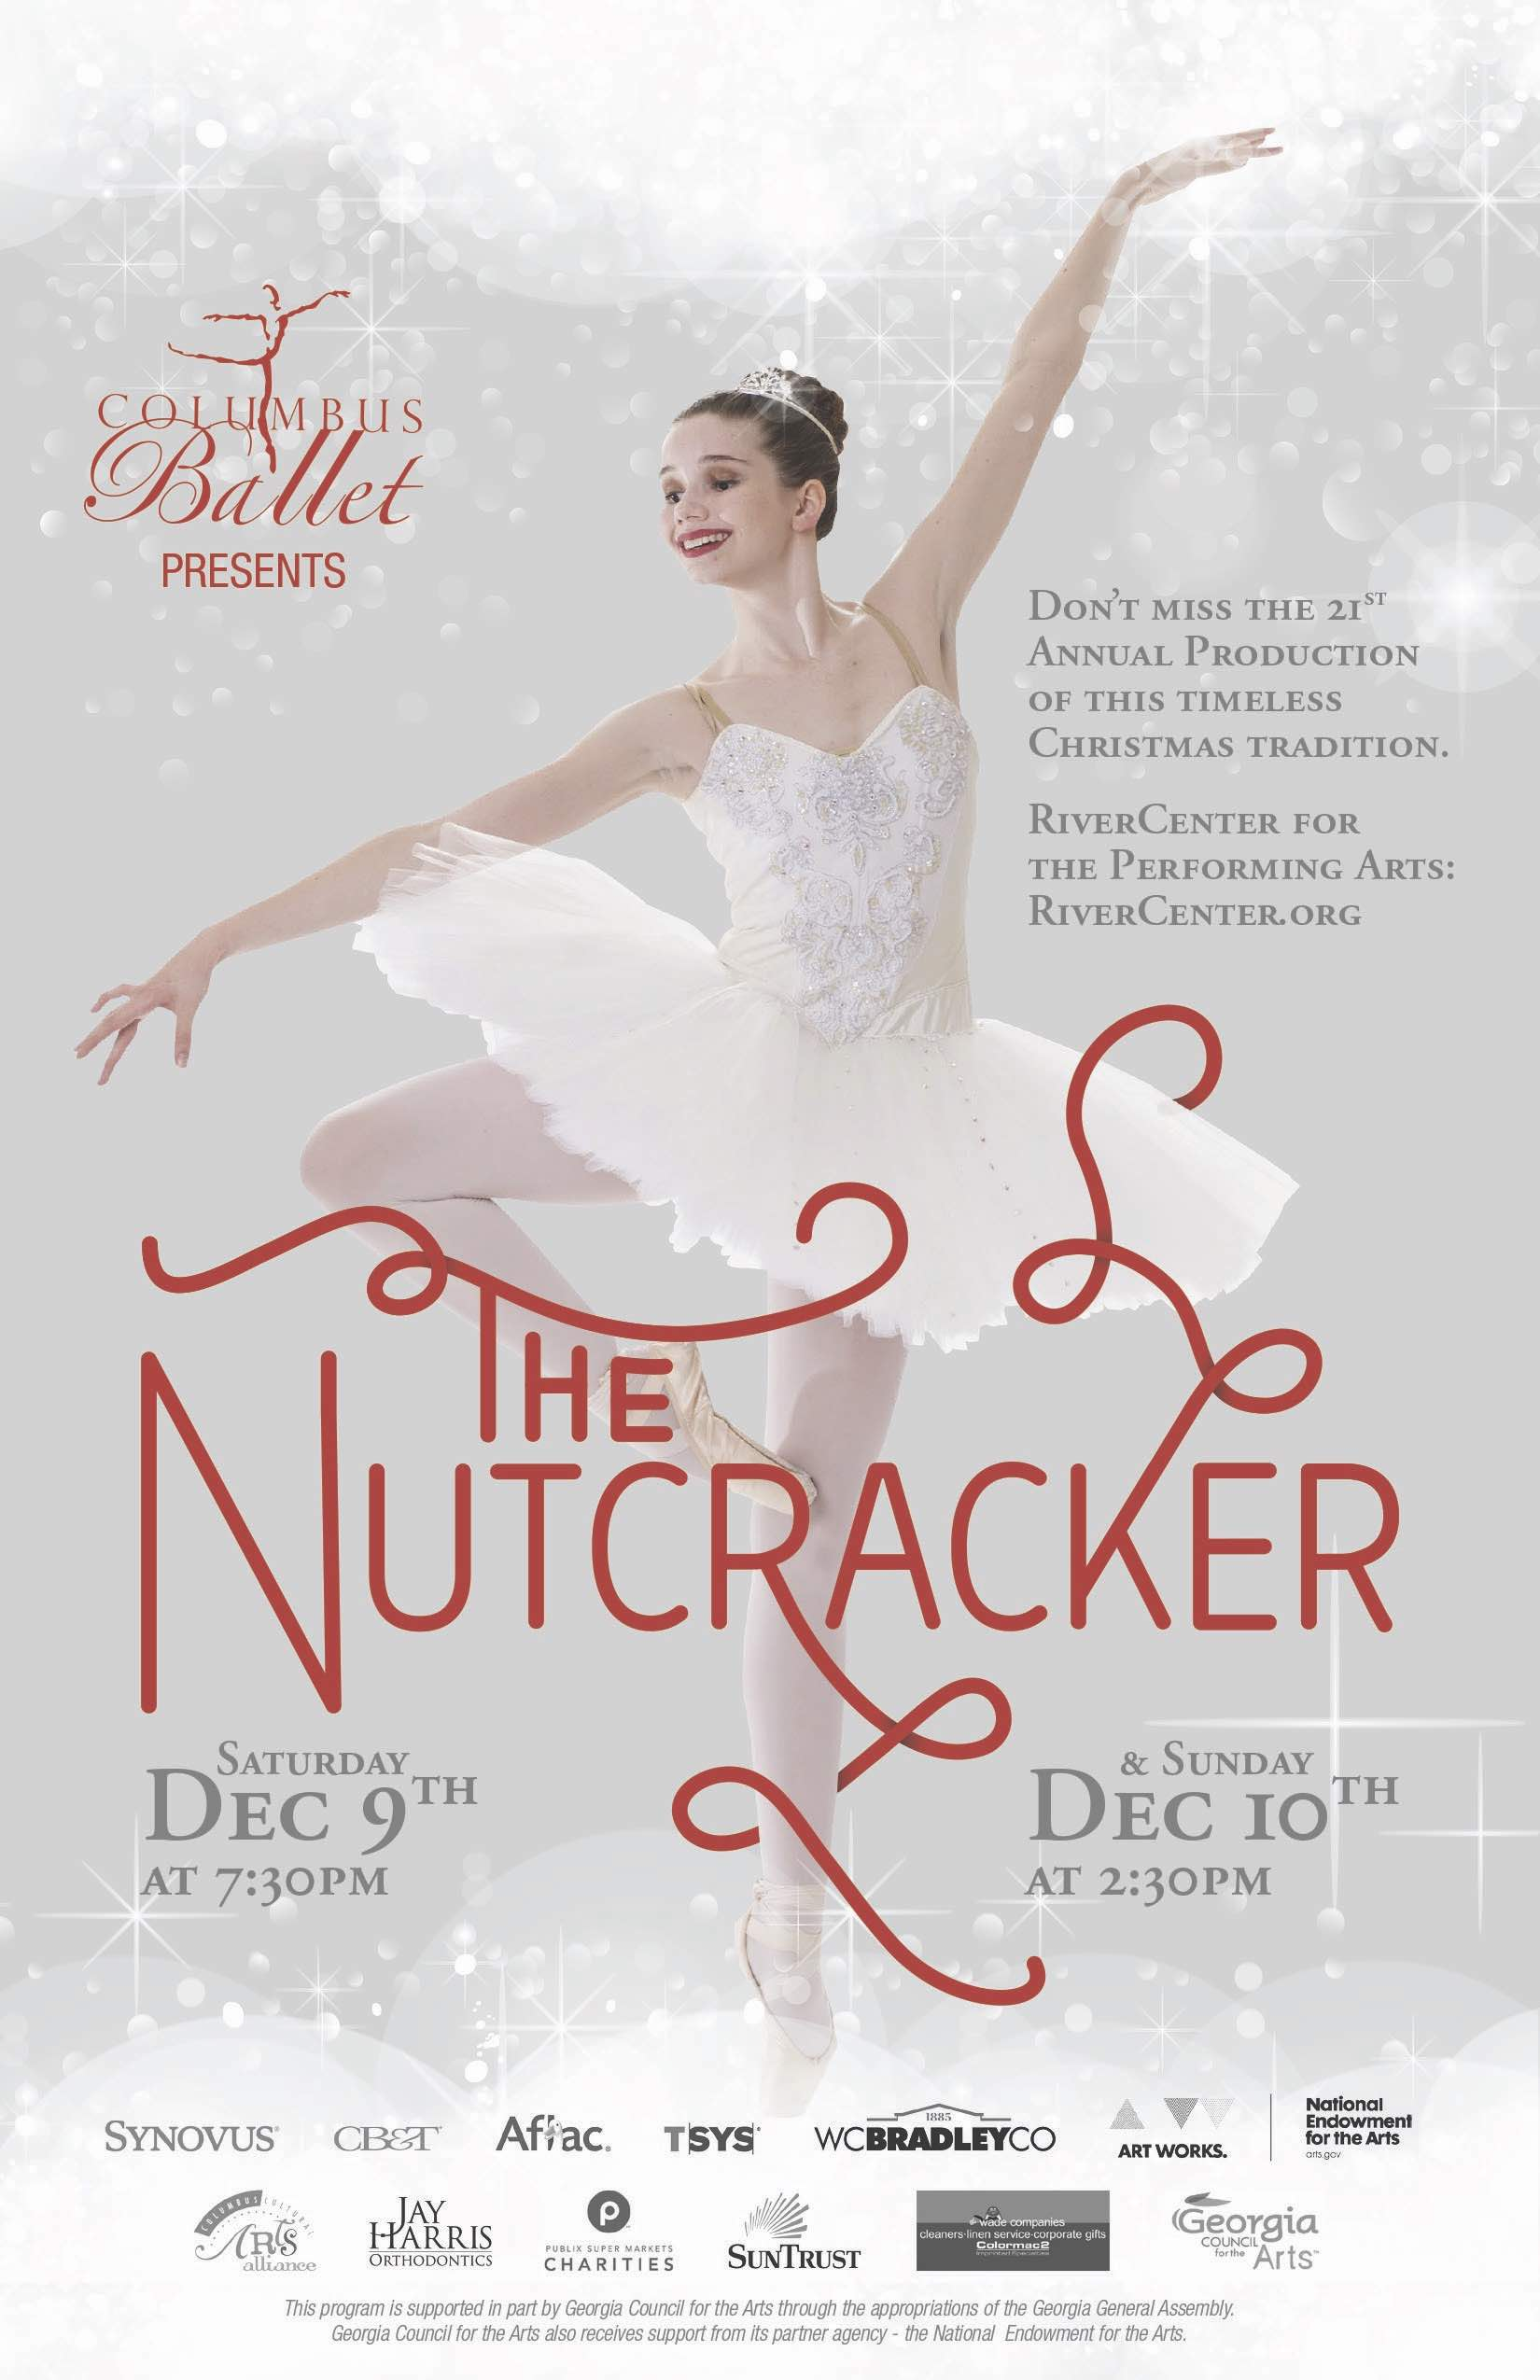 The Columbus Ballet PresentsThe Nutcracker